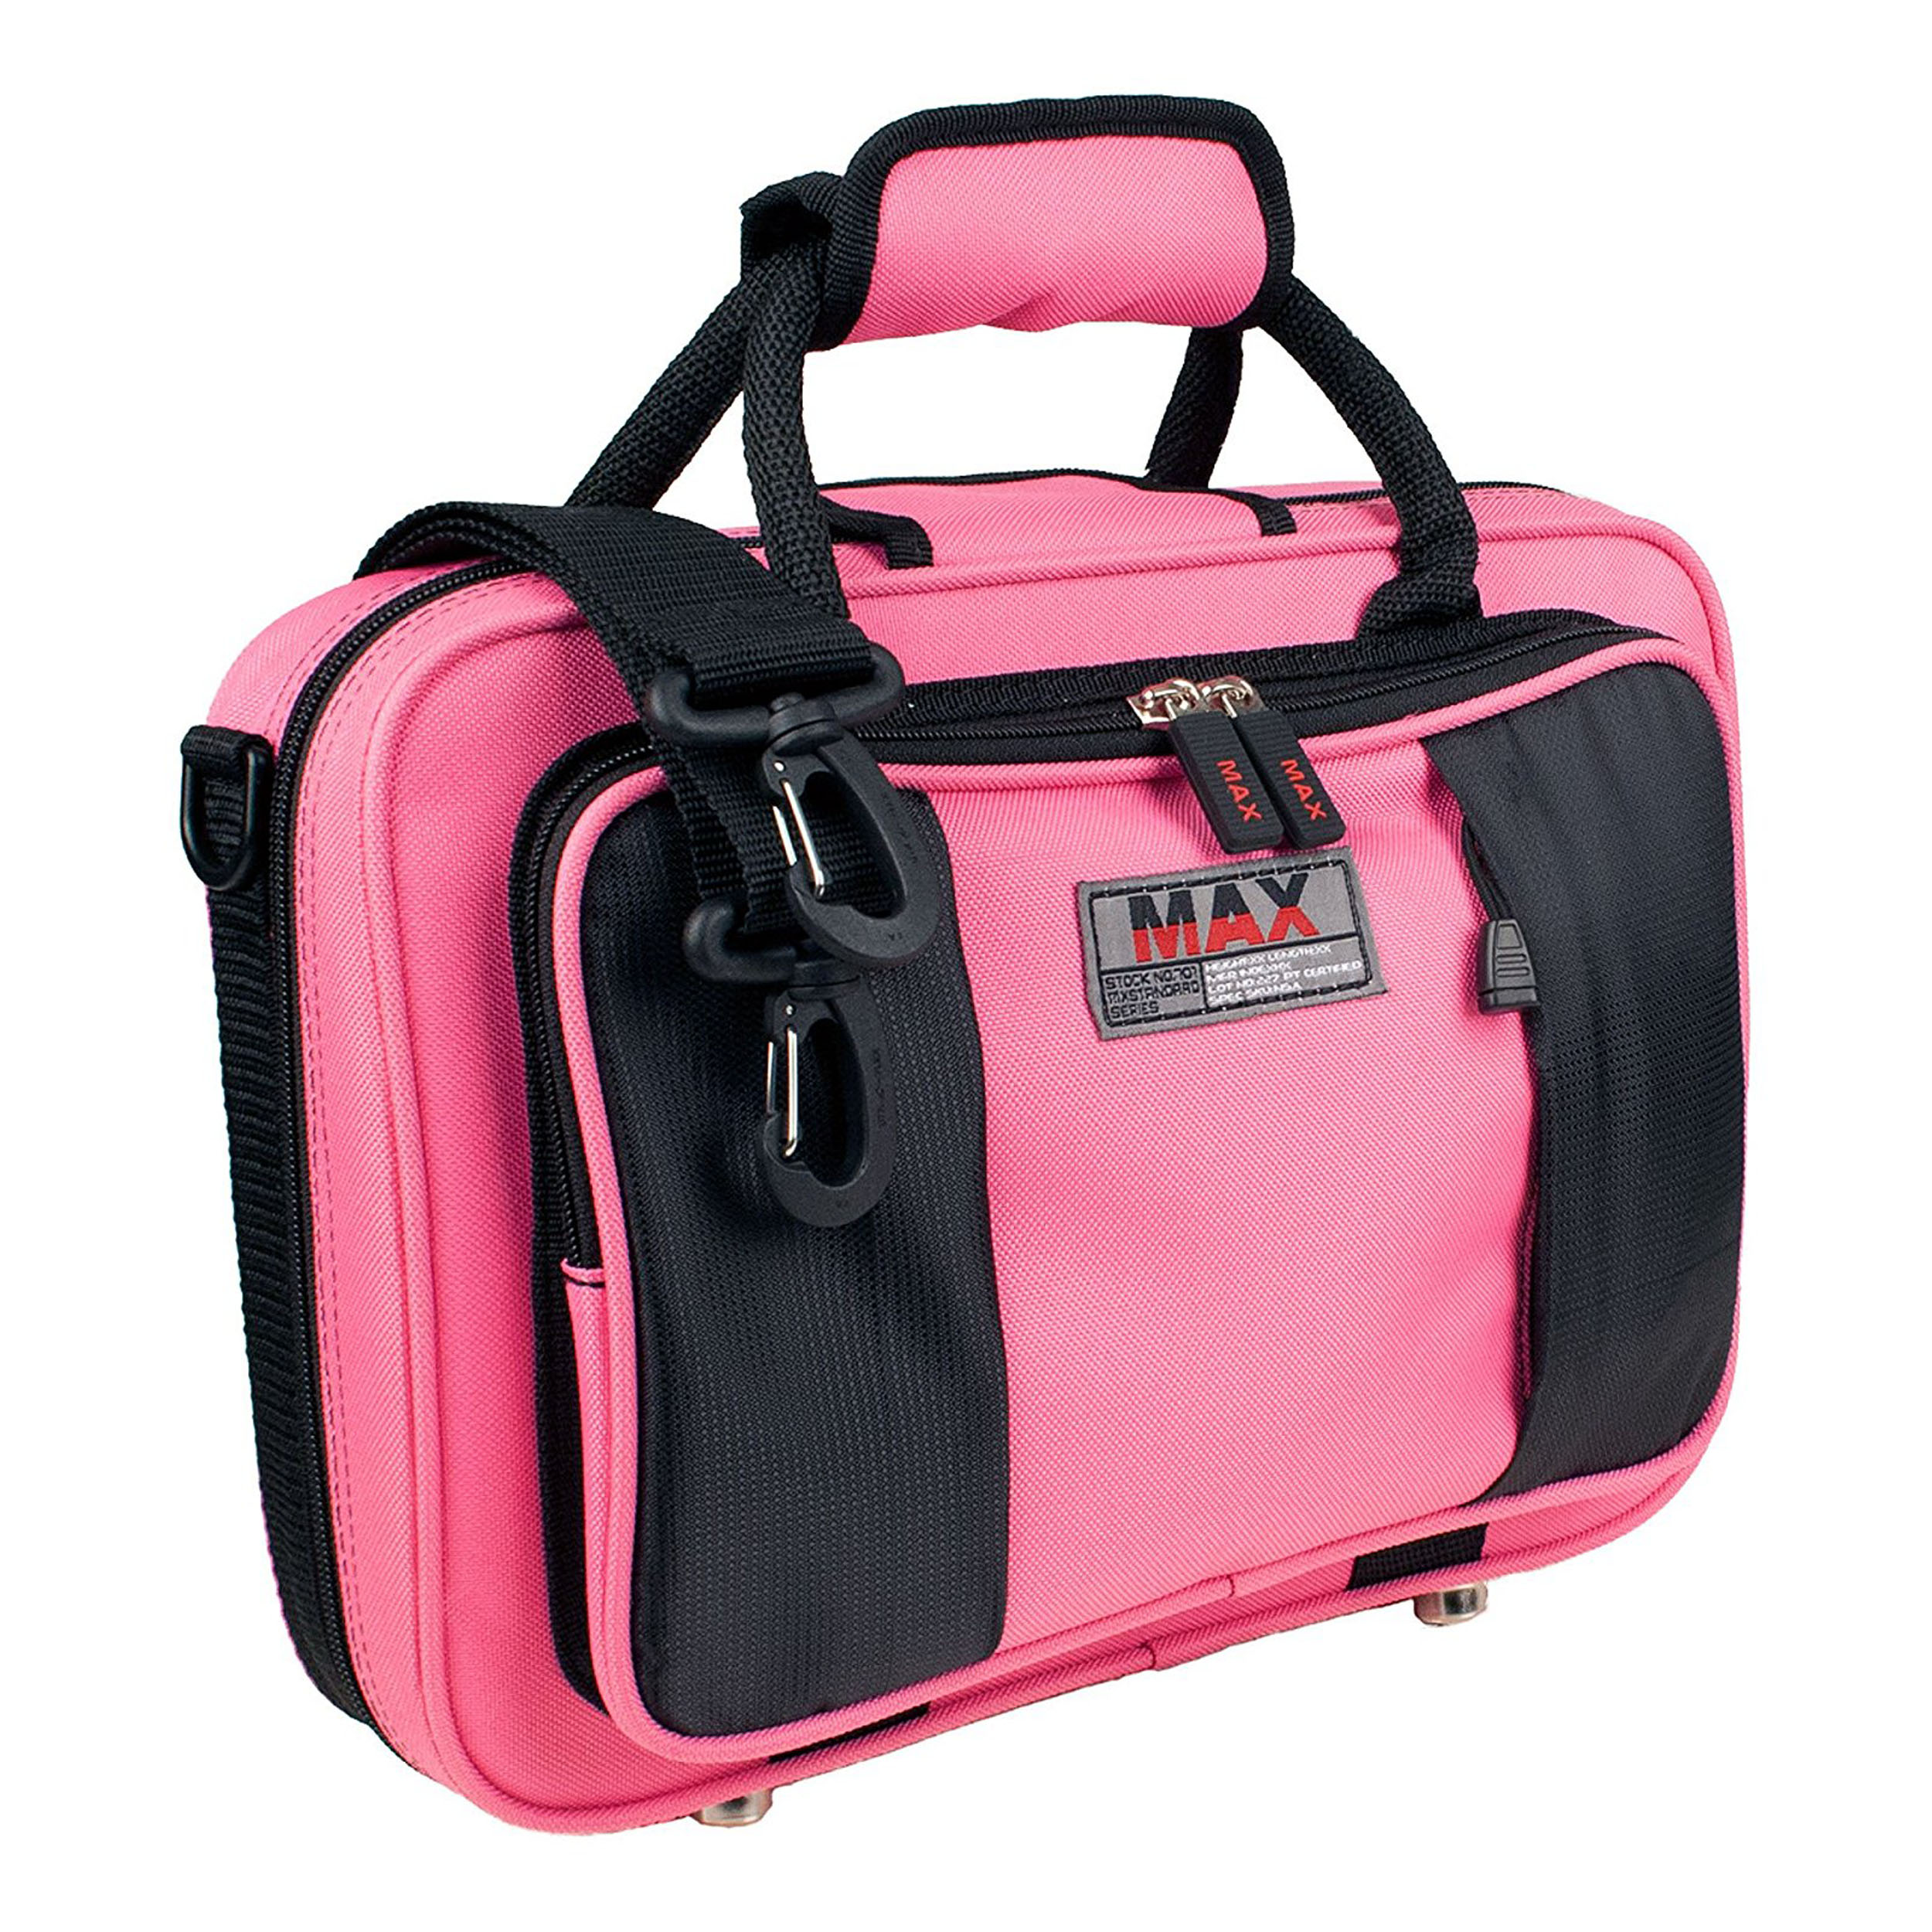 Protec Oboe MAX Case (Fuchsia), Model MX315FX